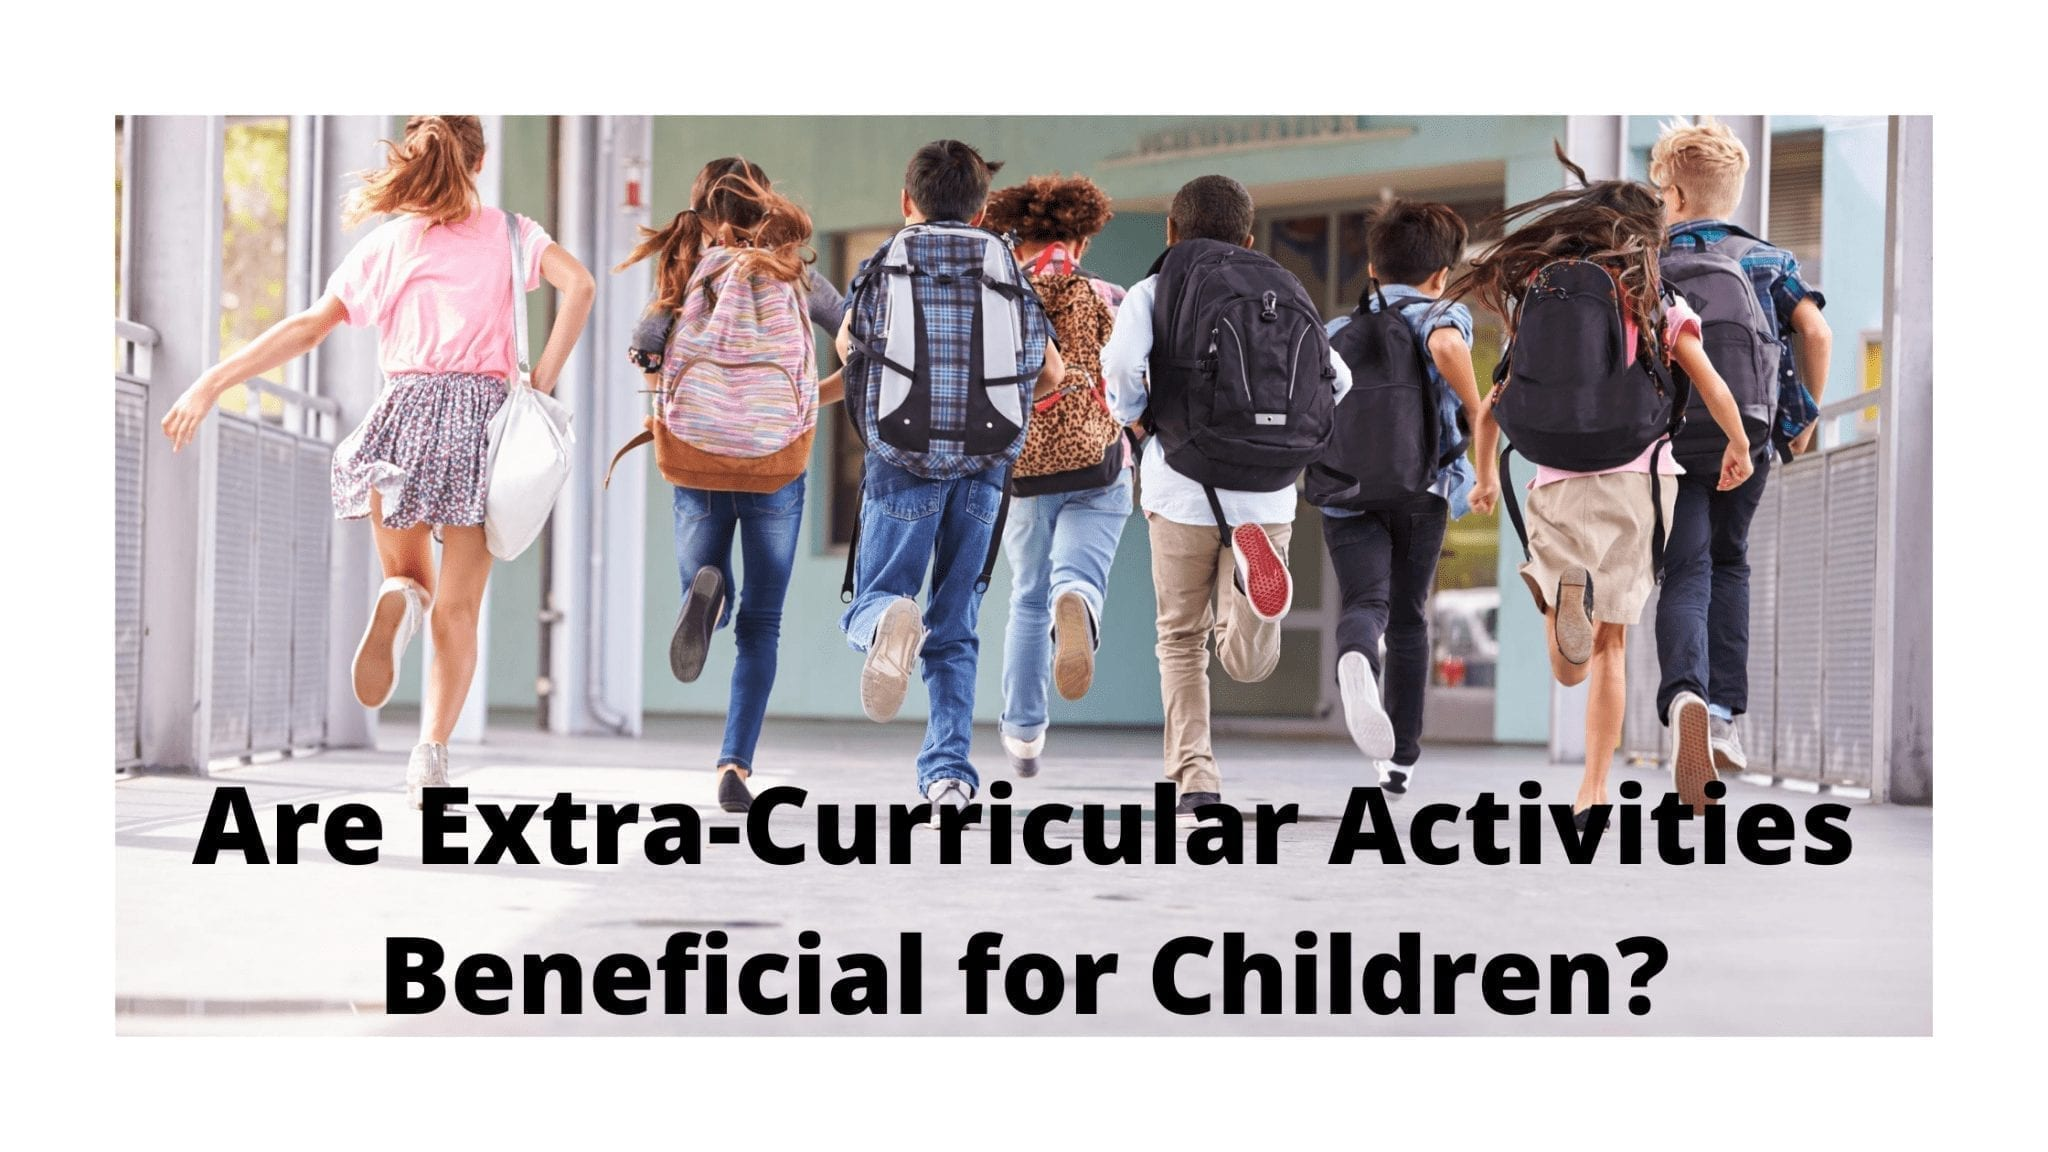 Are Extra-Curricular Activities Beneficial for Children?